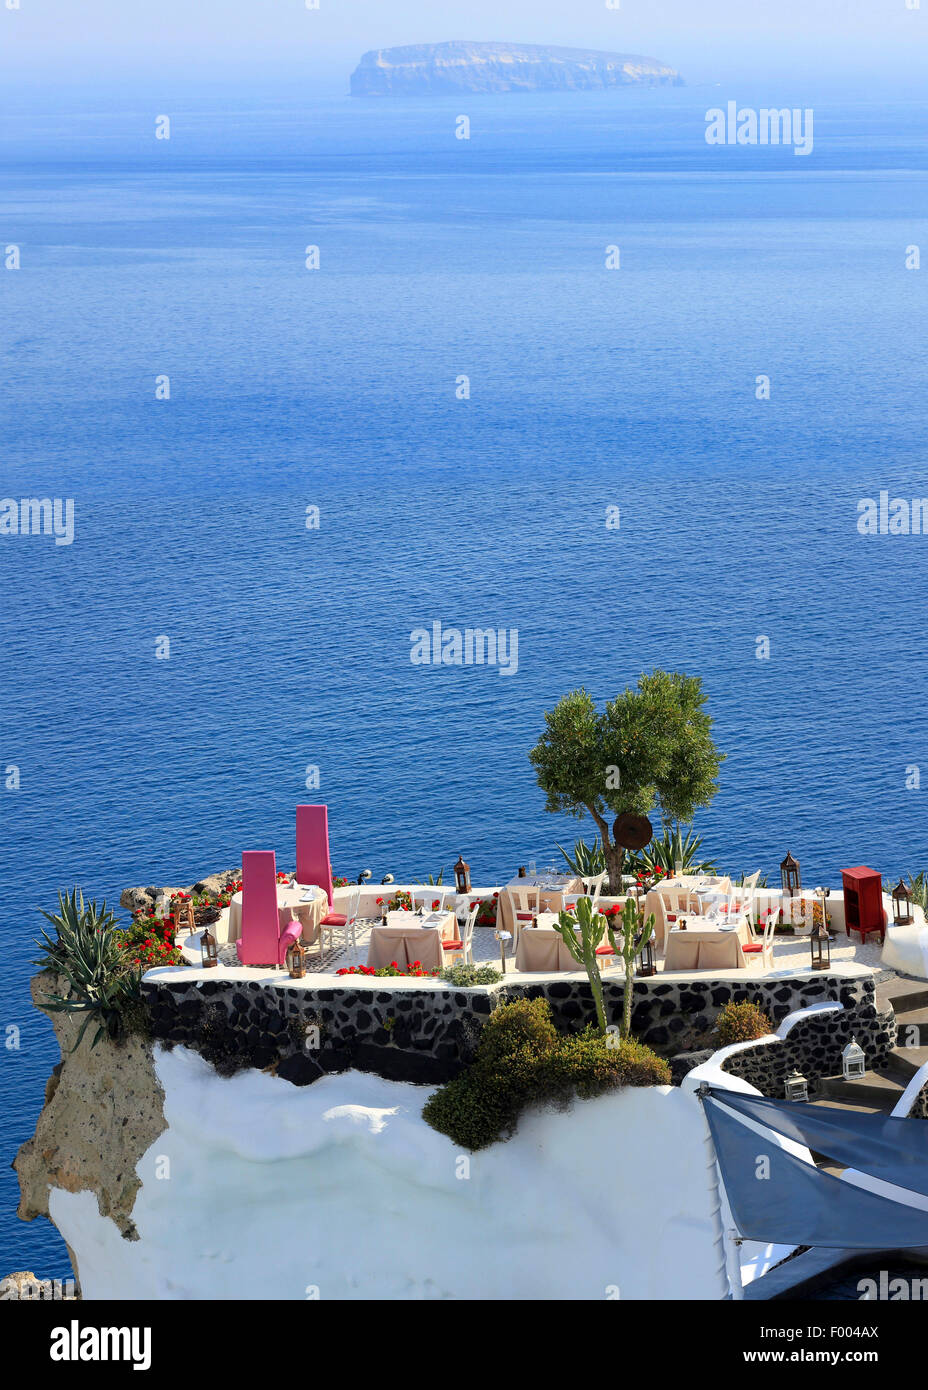 terrace of a hotel at the steep coast at the Mediterranean Sea, Greece, Cyclades, Santorin, Oia - Stock Image